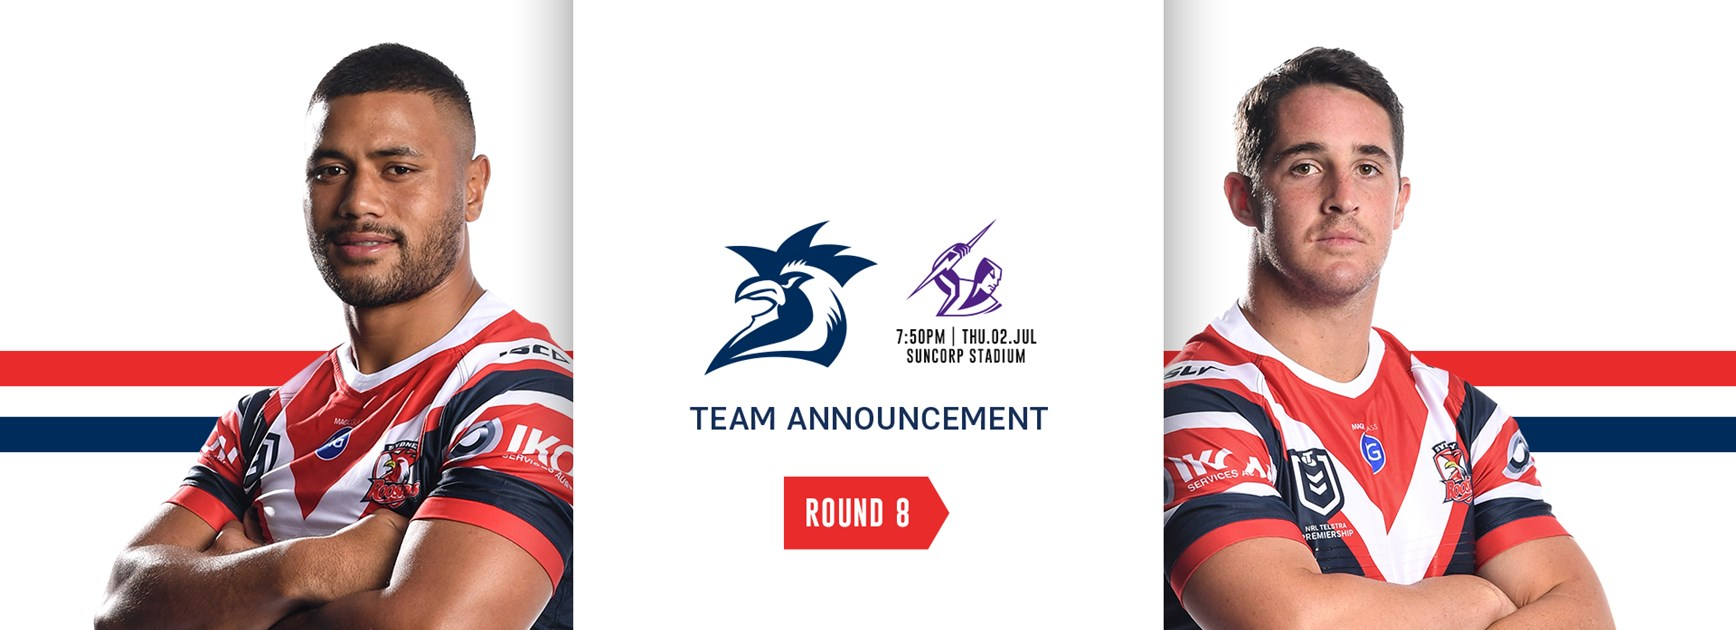 Team Announcement | Round 8